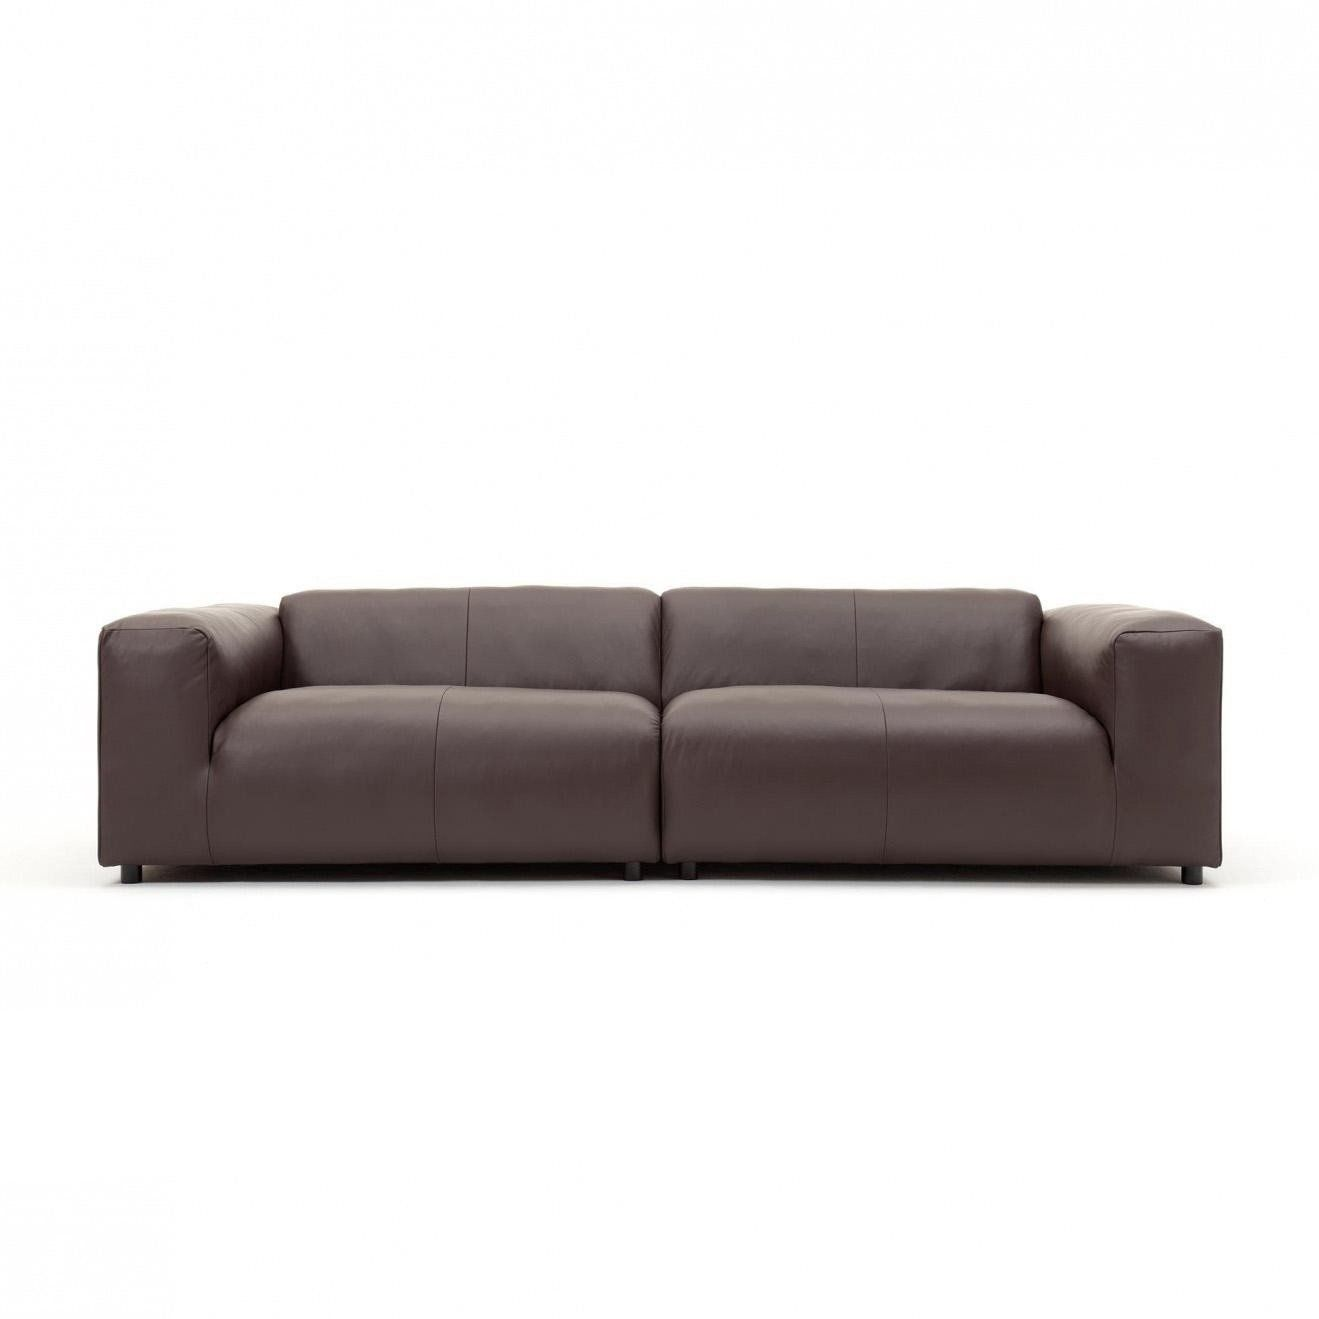 Rolf Benz Sofa Reinigen Freistil 187 3 Seater Leather Sofa Freistil Rolf Benz